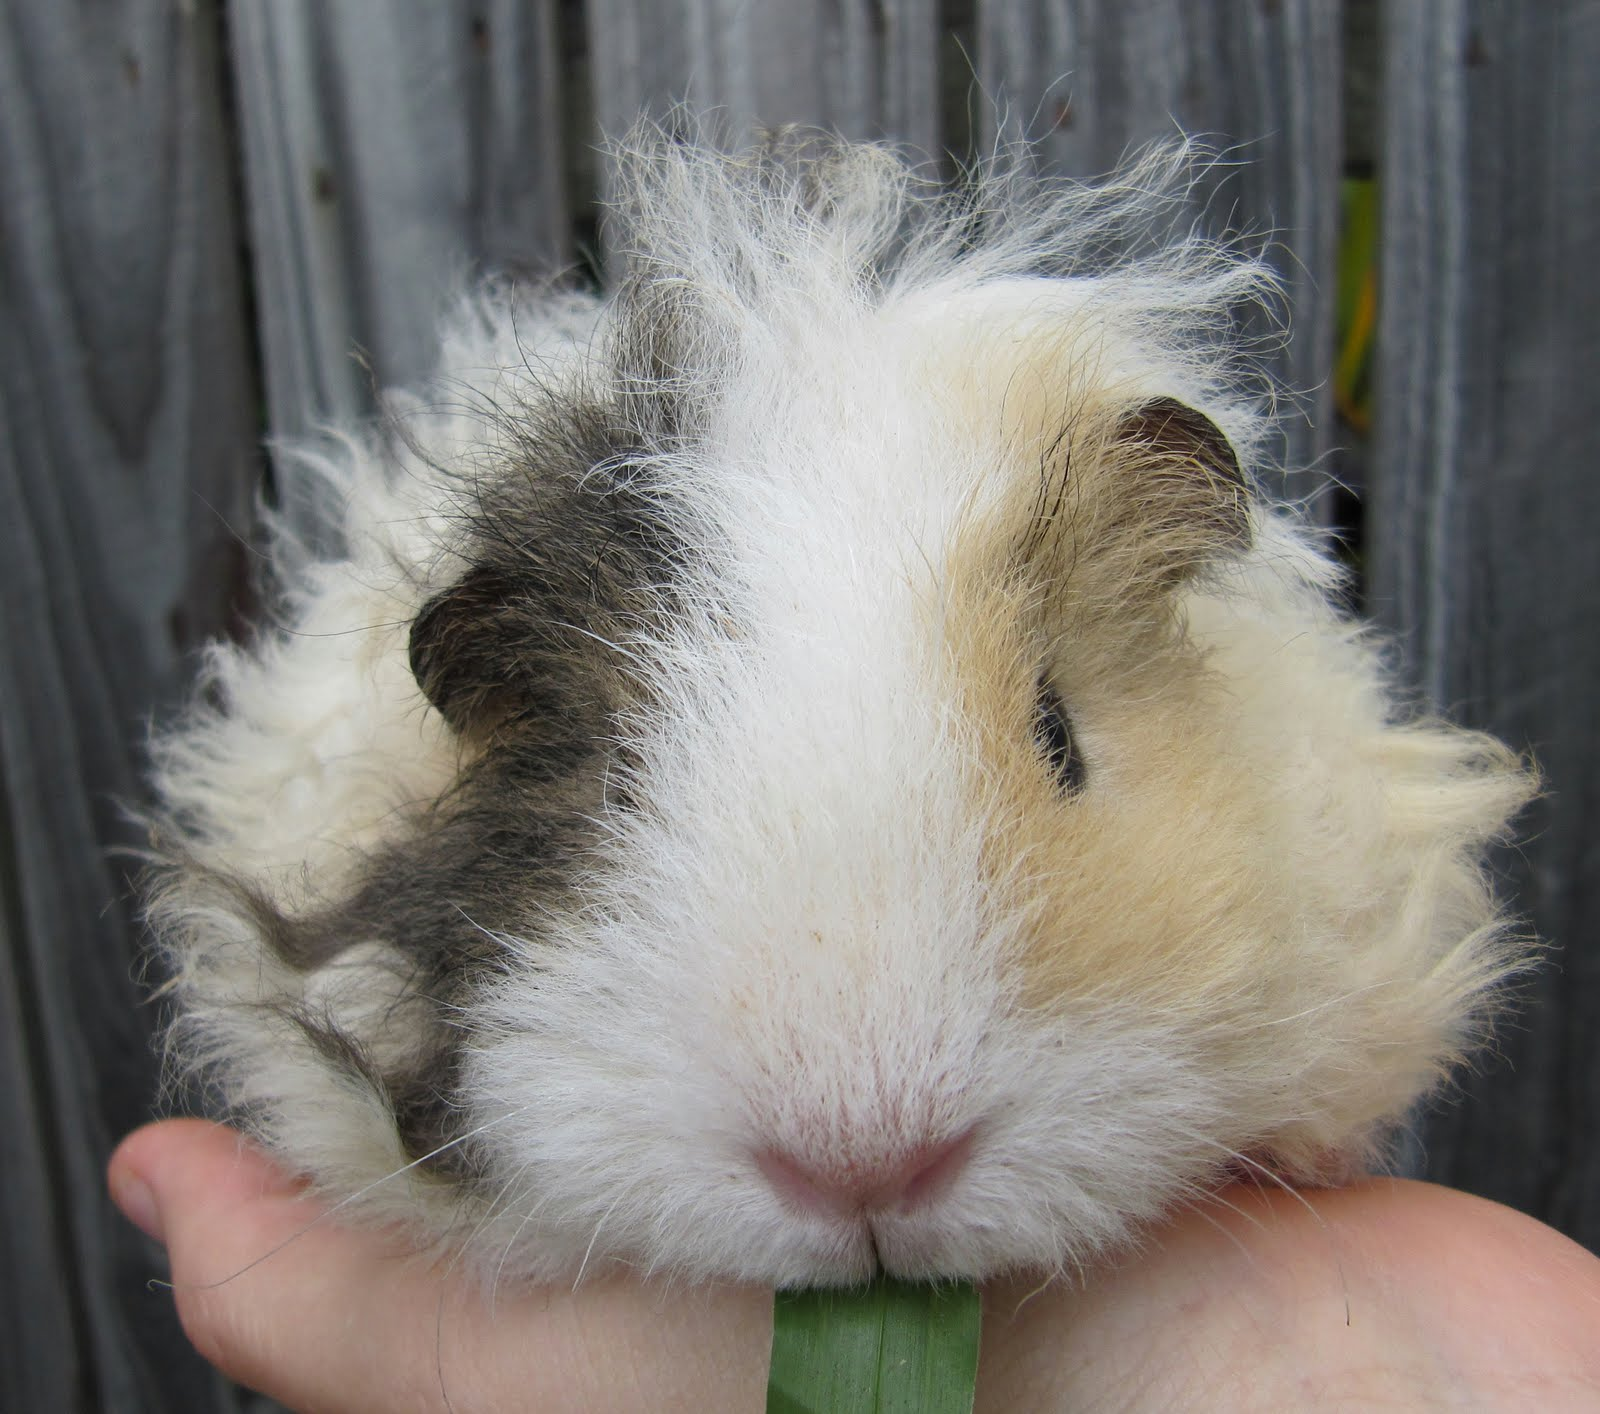 Curly Long Haired Guinea Pig